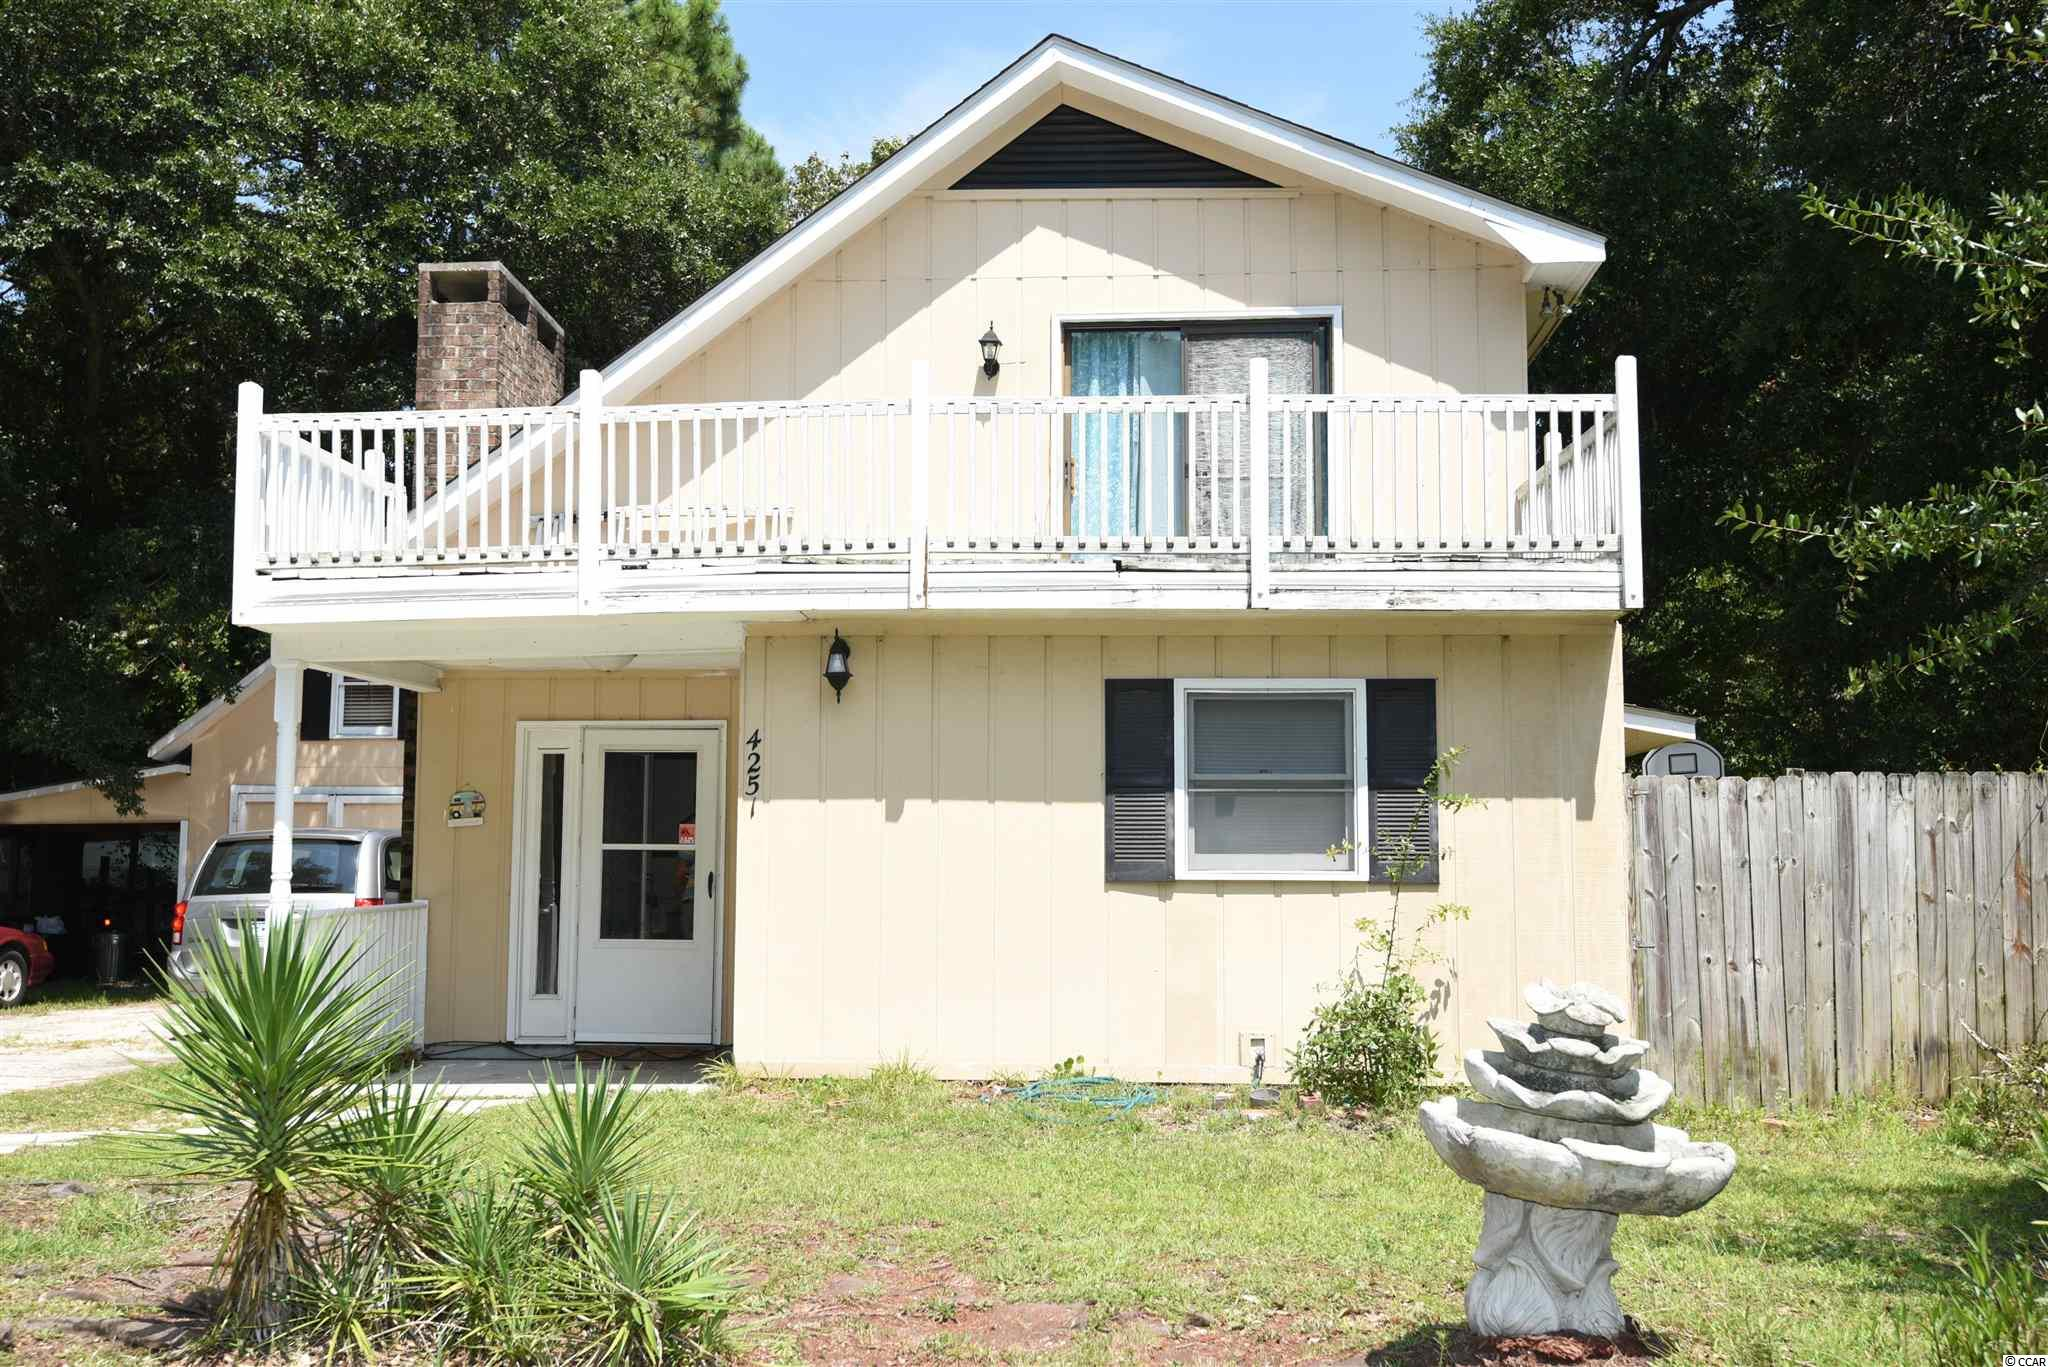 Wonderfully affordable opportunity to own this single family home in Little River. Centrally located, this home is situated on a private, fenced, .27 acre lot and close to the ICW and the beaches in Cherry Grove and Sunset Beach.